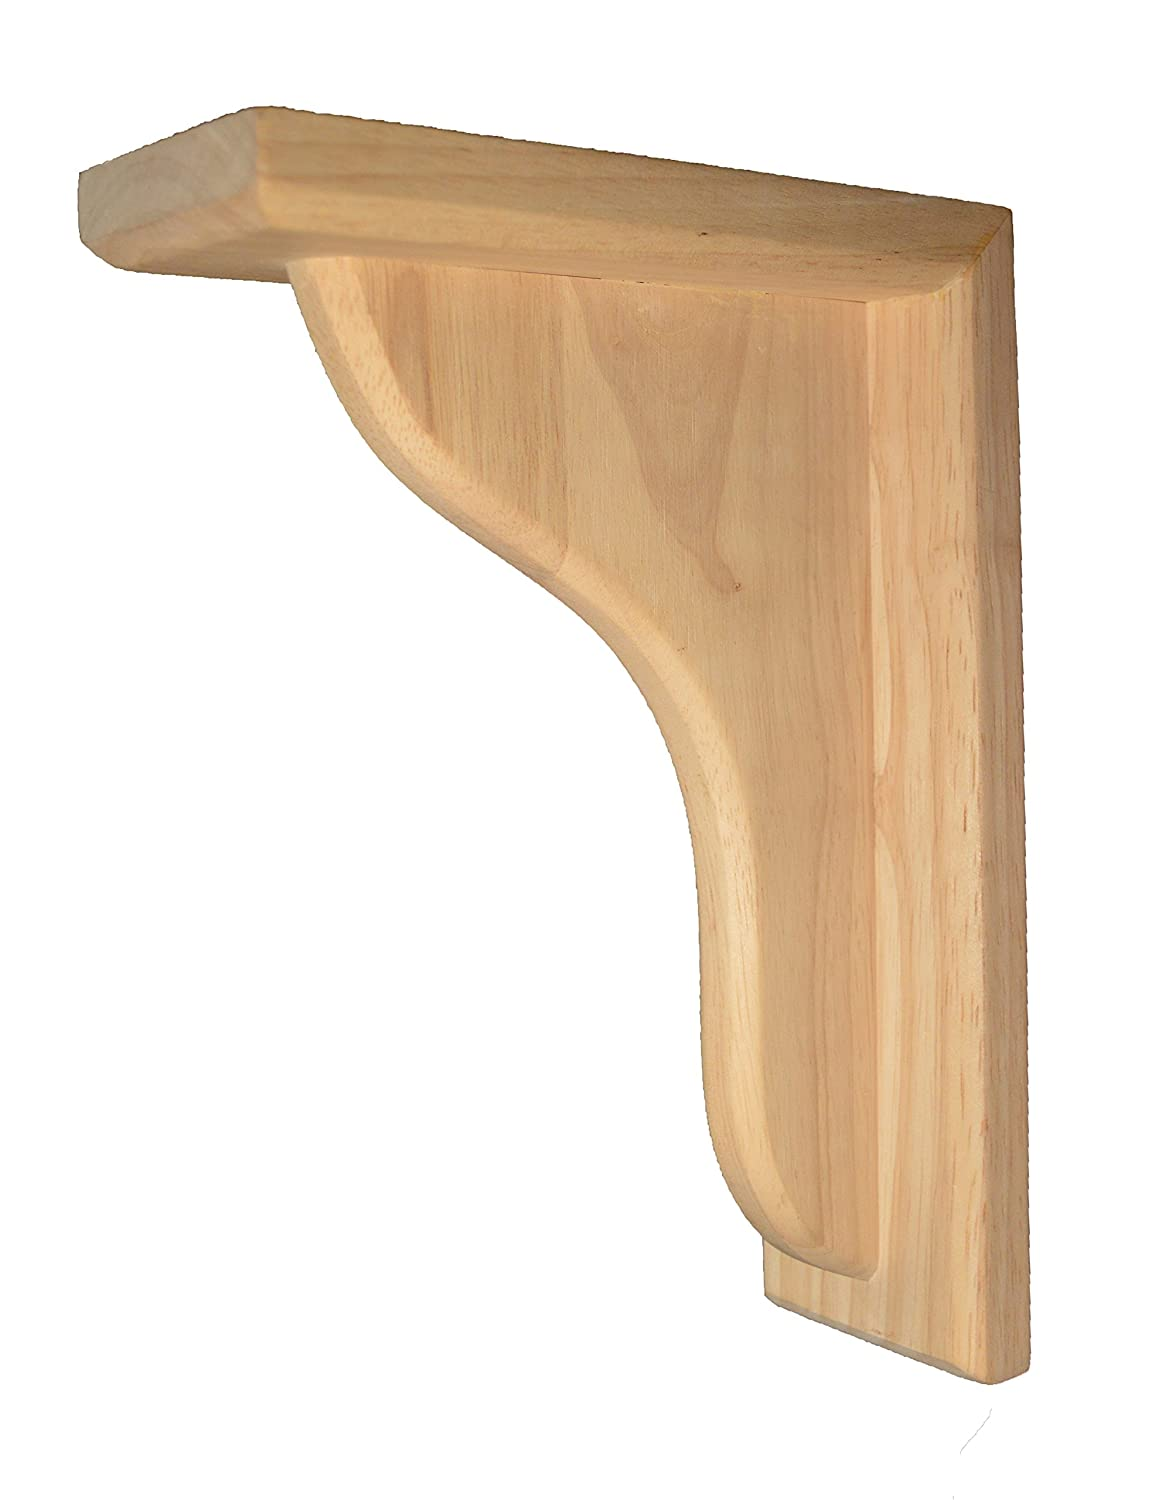 BingLTD- Corbel Rustic Solid Hardwood Bracket -Set of 2 (C6)